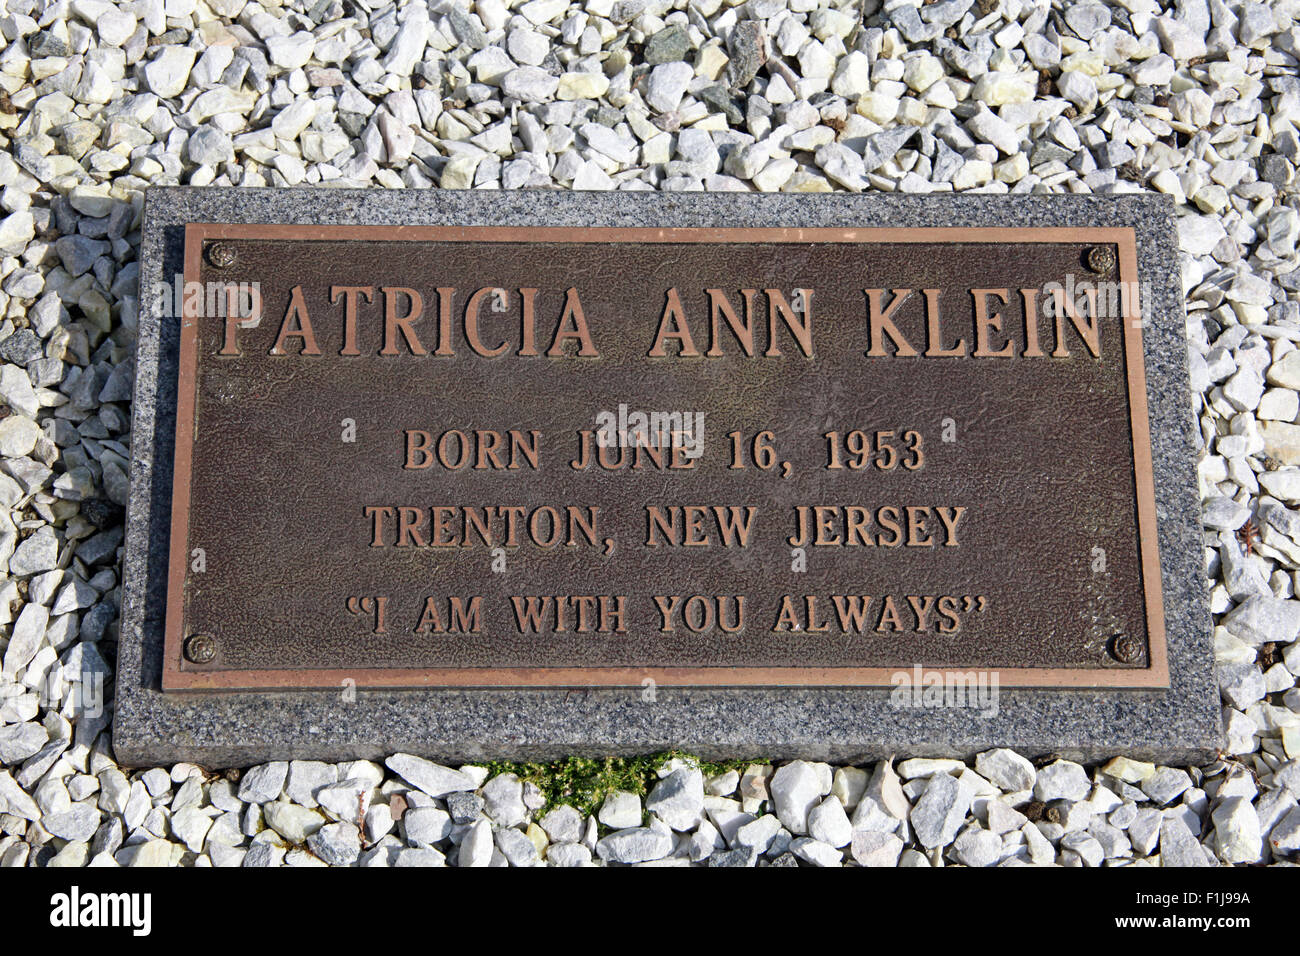 Lockerbie PanAm103 In Rememberance Memorial Patricia Ann Klein, Scotland - Stock Image